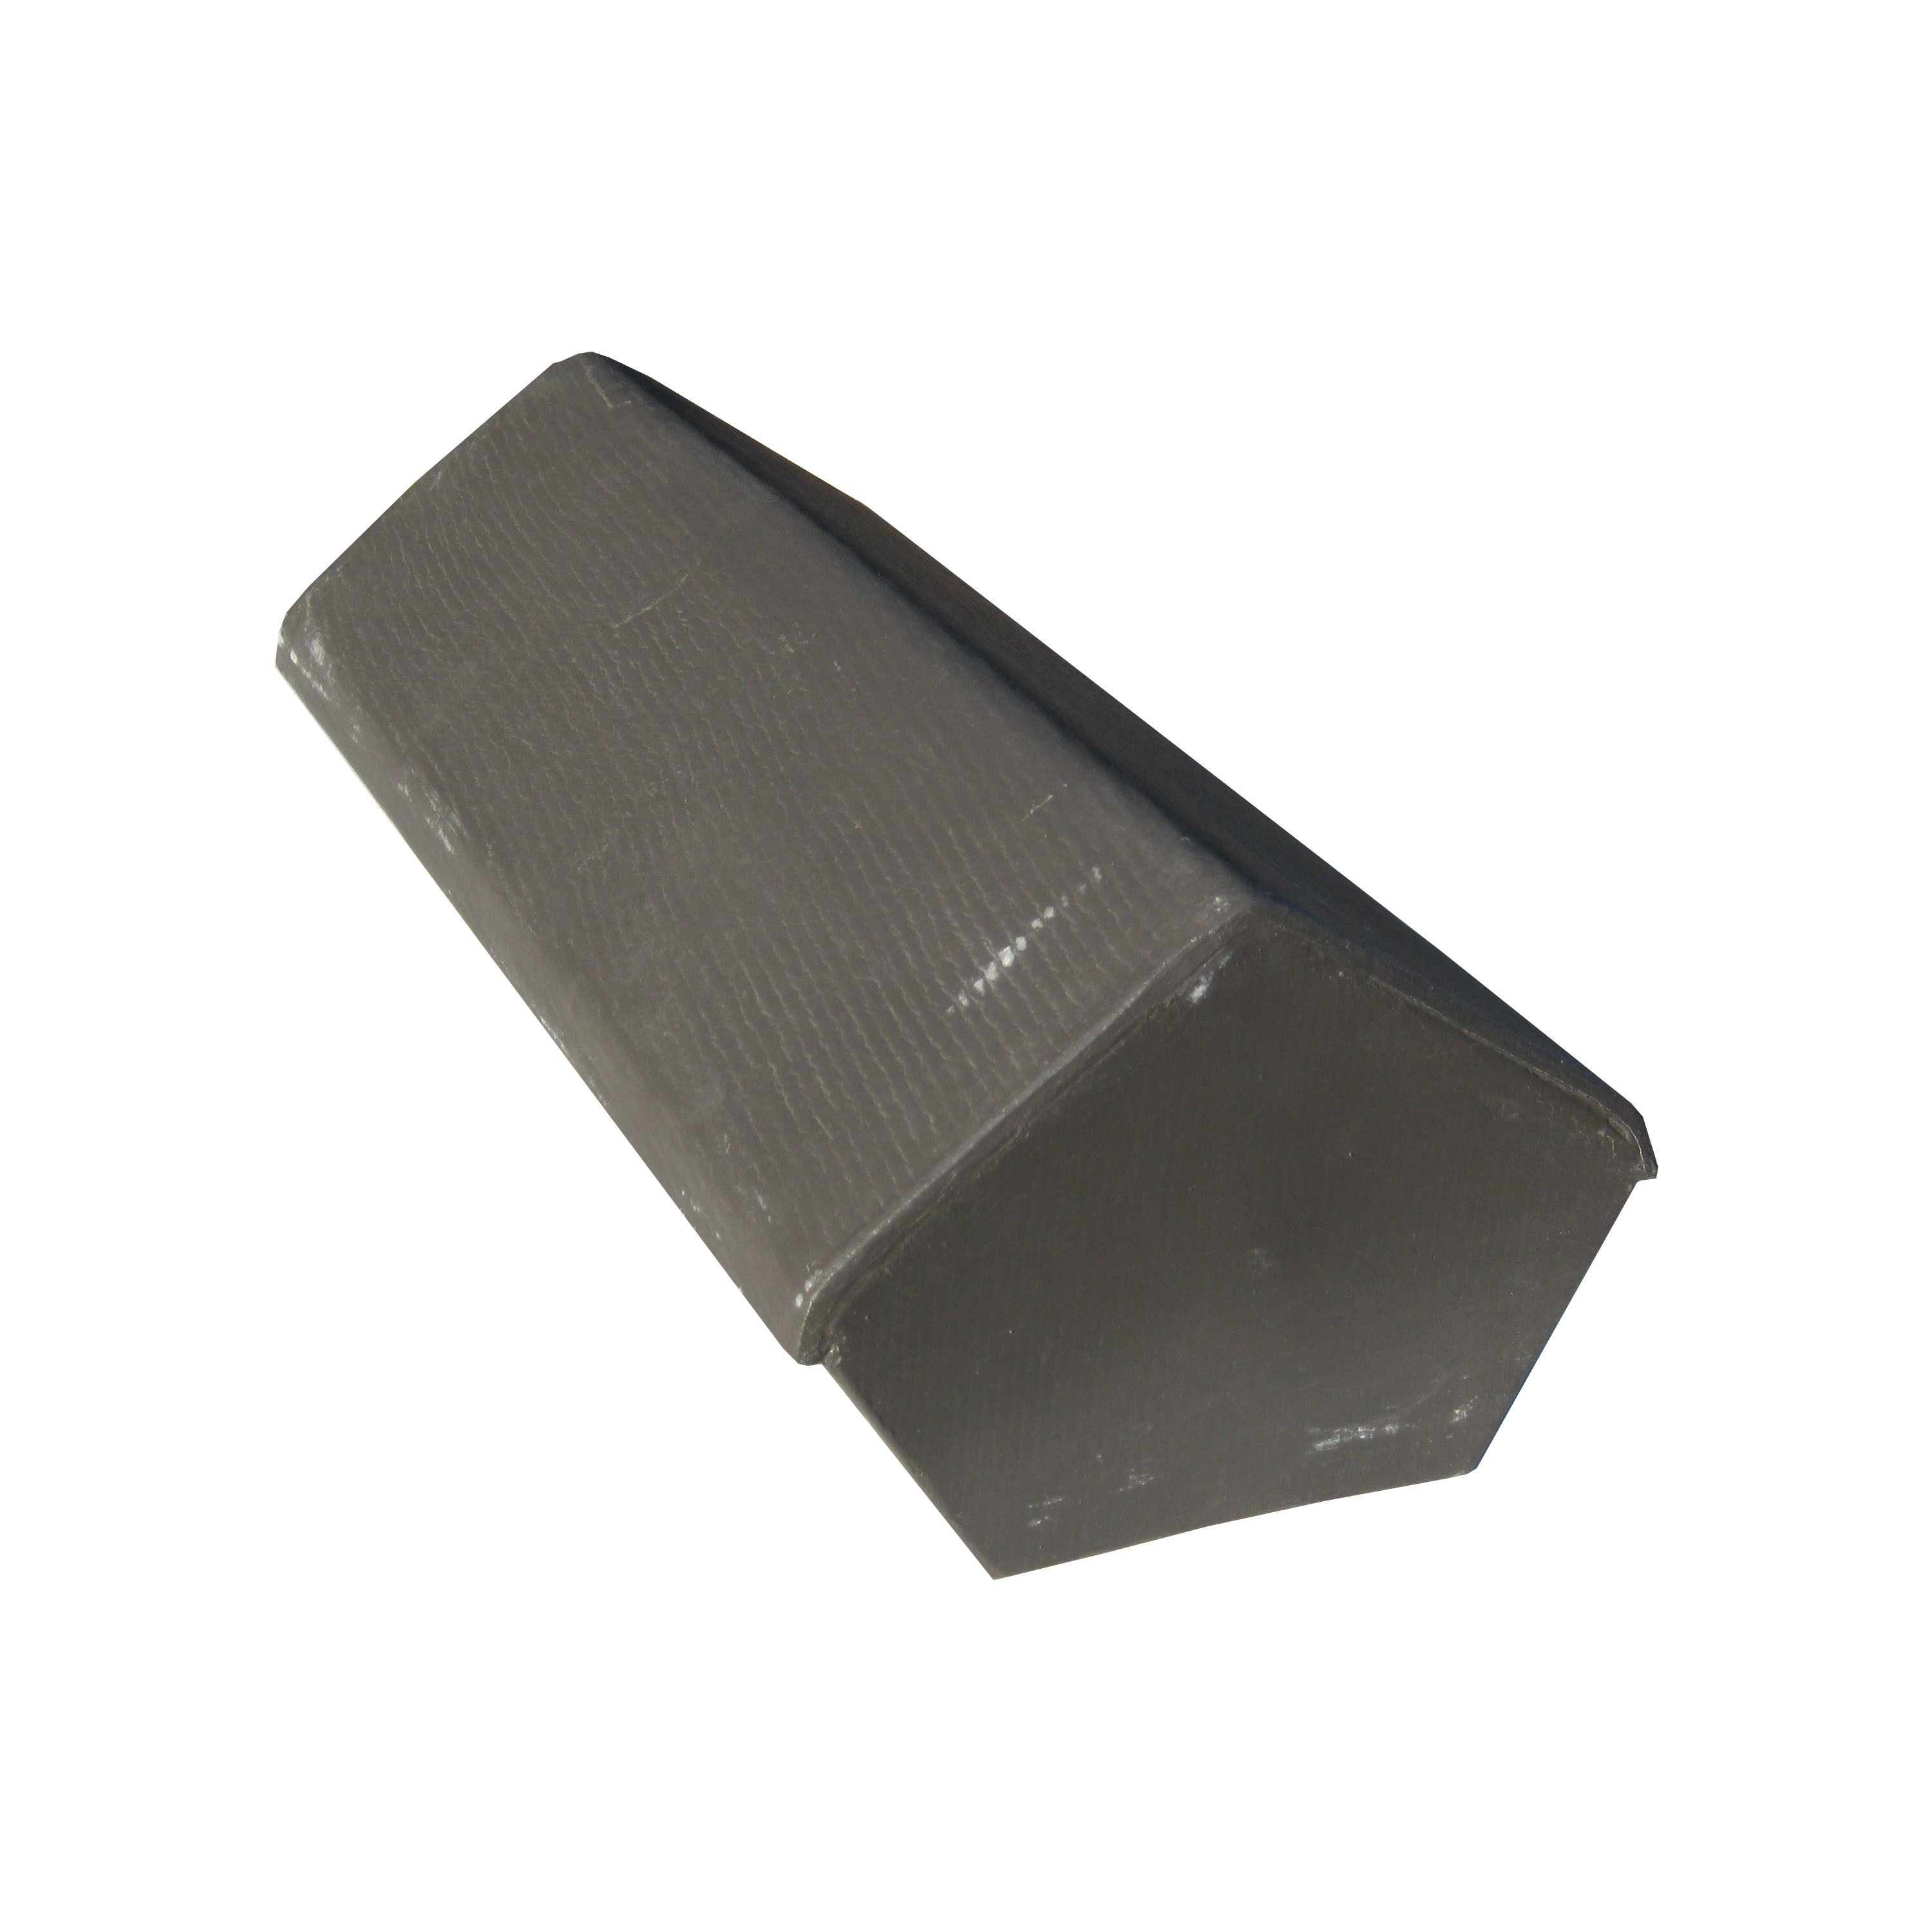 Cembrit Fibre Cement Continuous Vented 75° to 135° Ridge with End Cap - 500mm x 250mm